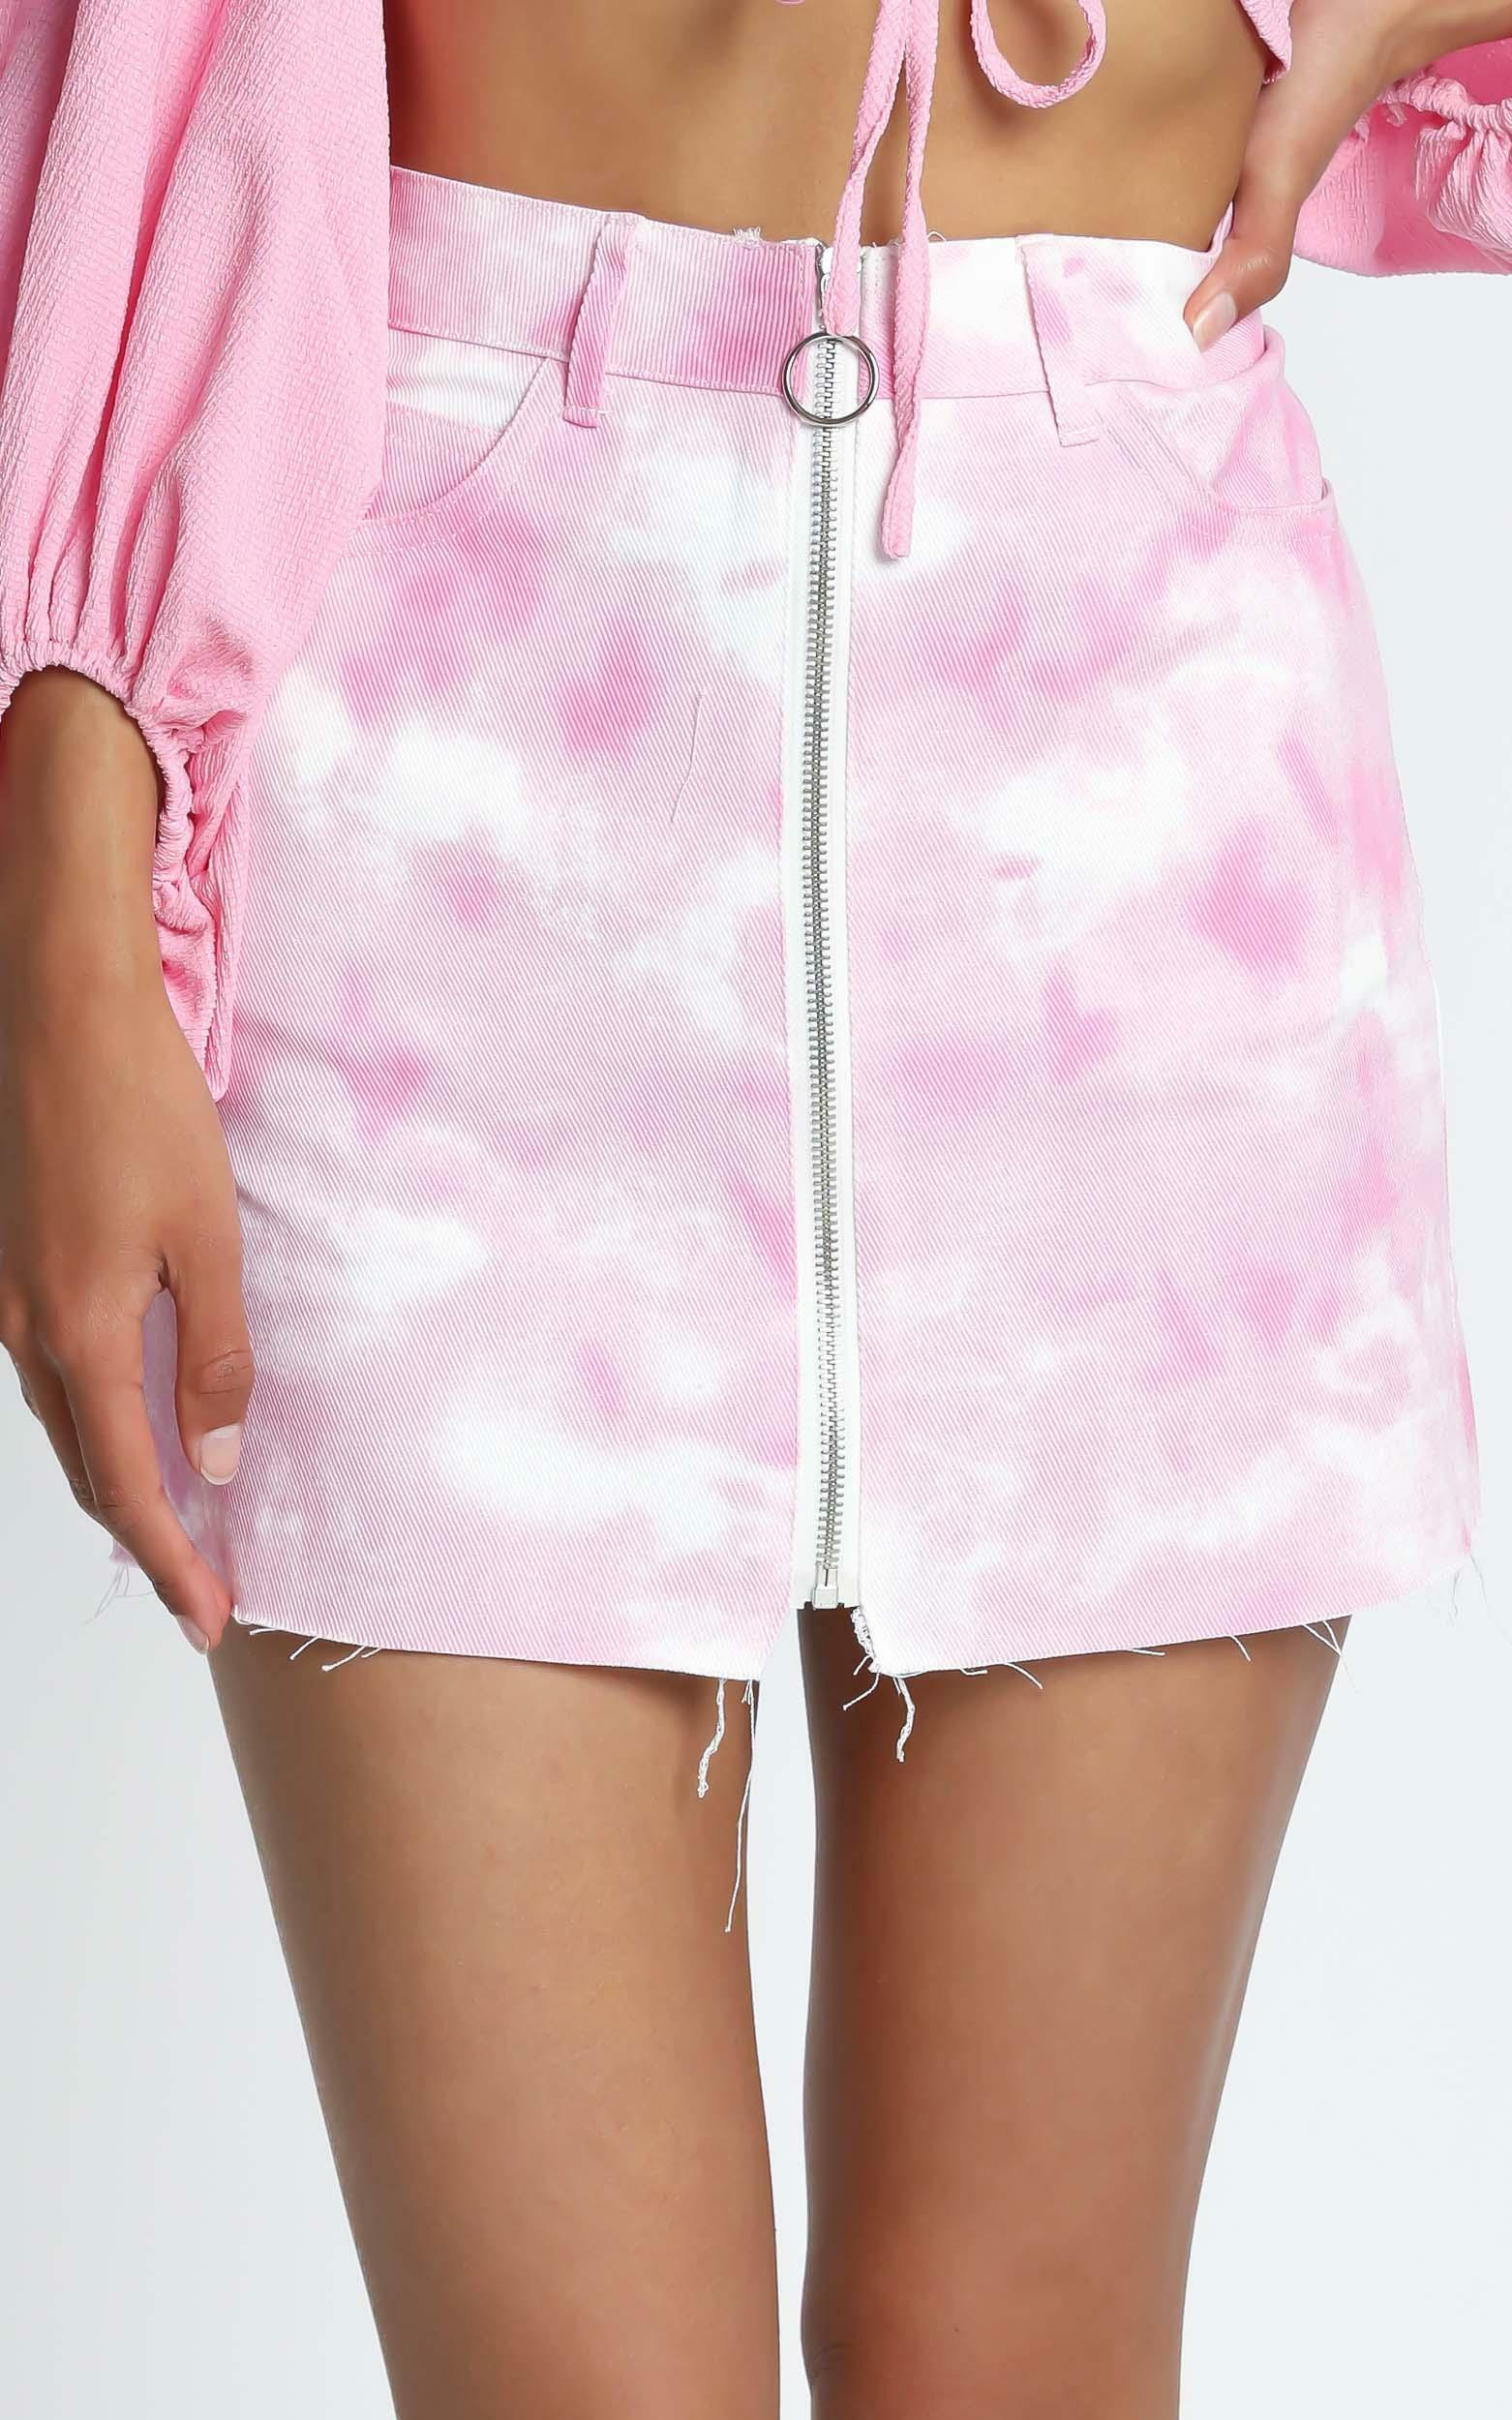 Holland Mini Skirt in Pink Tie Dye - 12 (L), Pink, hi-res image number null